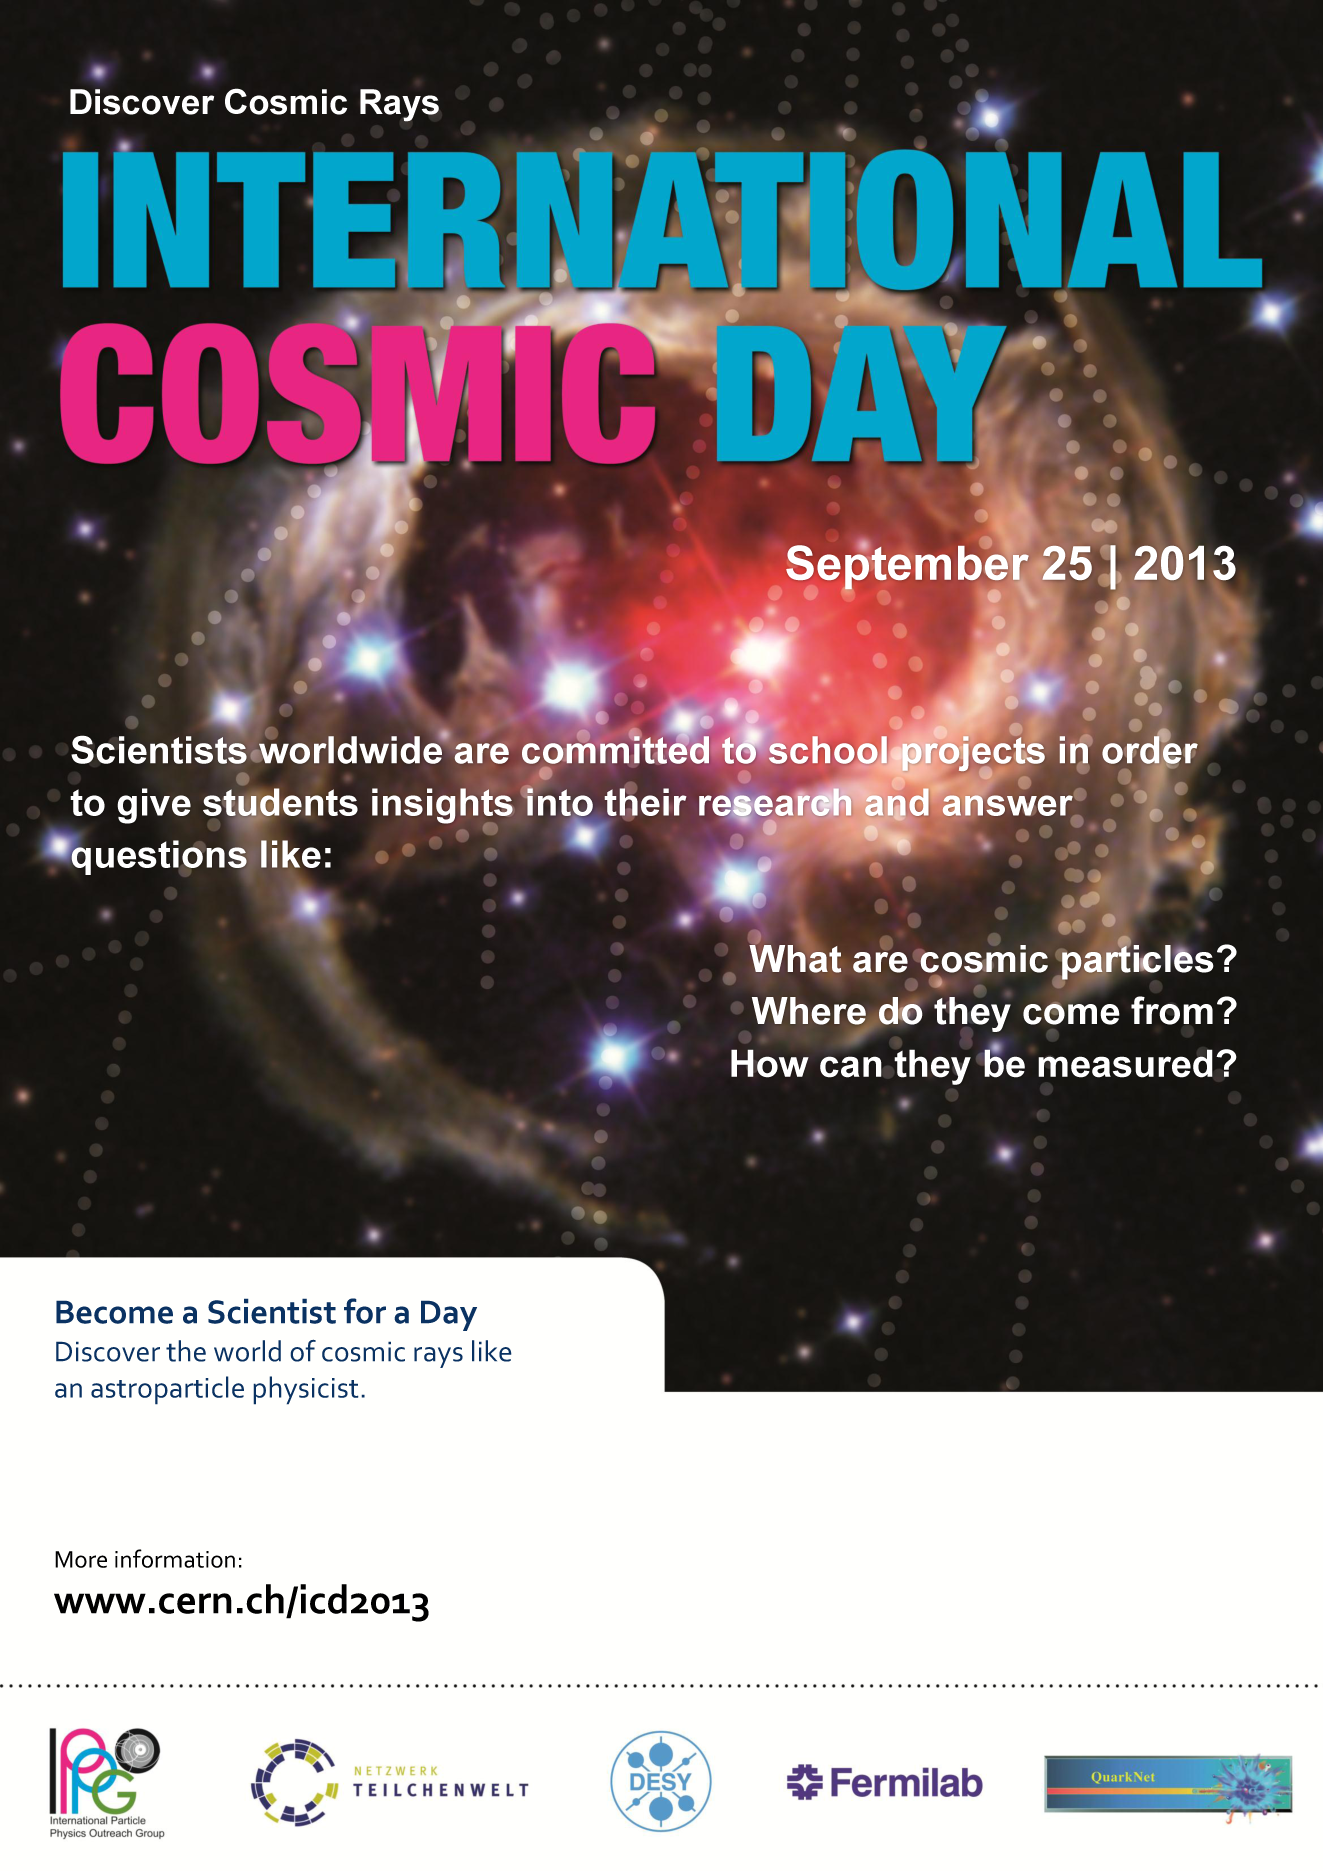 International Cosmic Day 2013